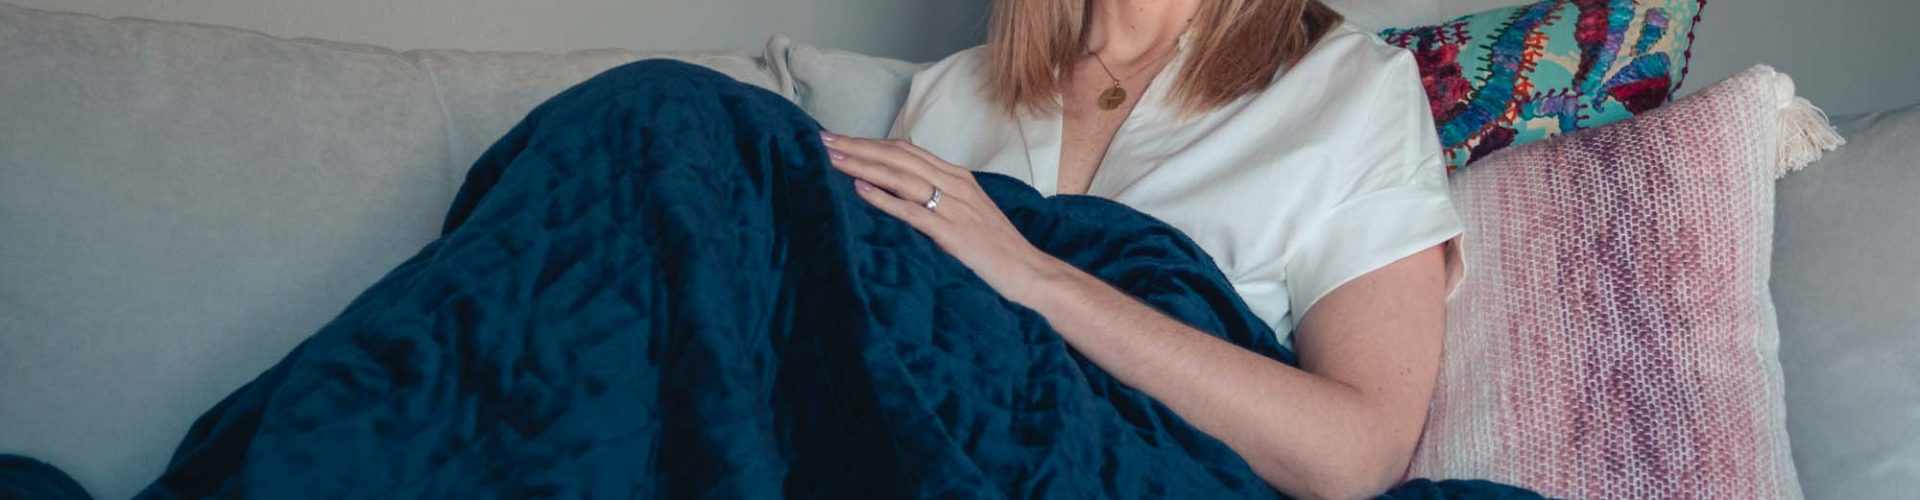 Calming Blanket Review: Are Weighted Blankets Worth It?